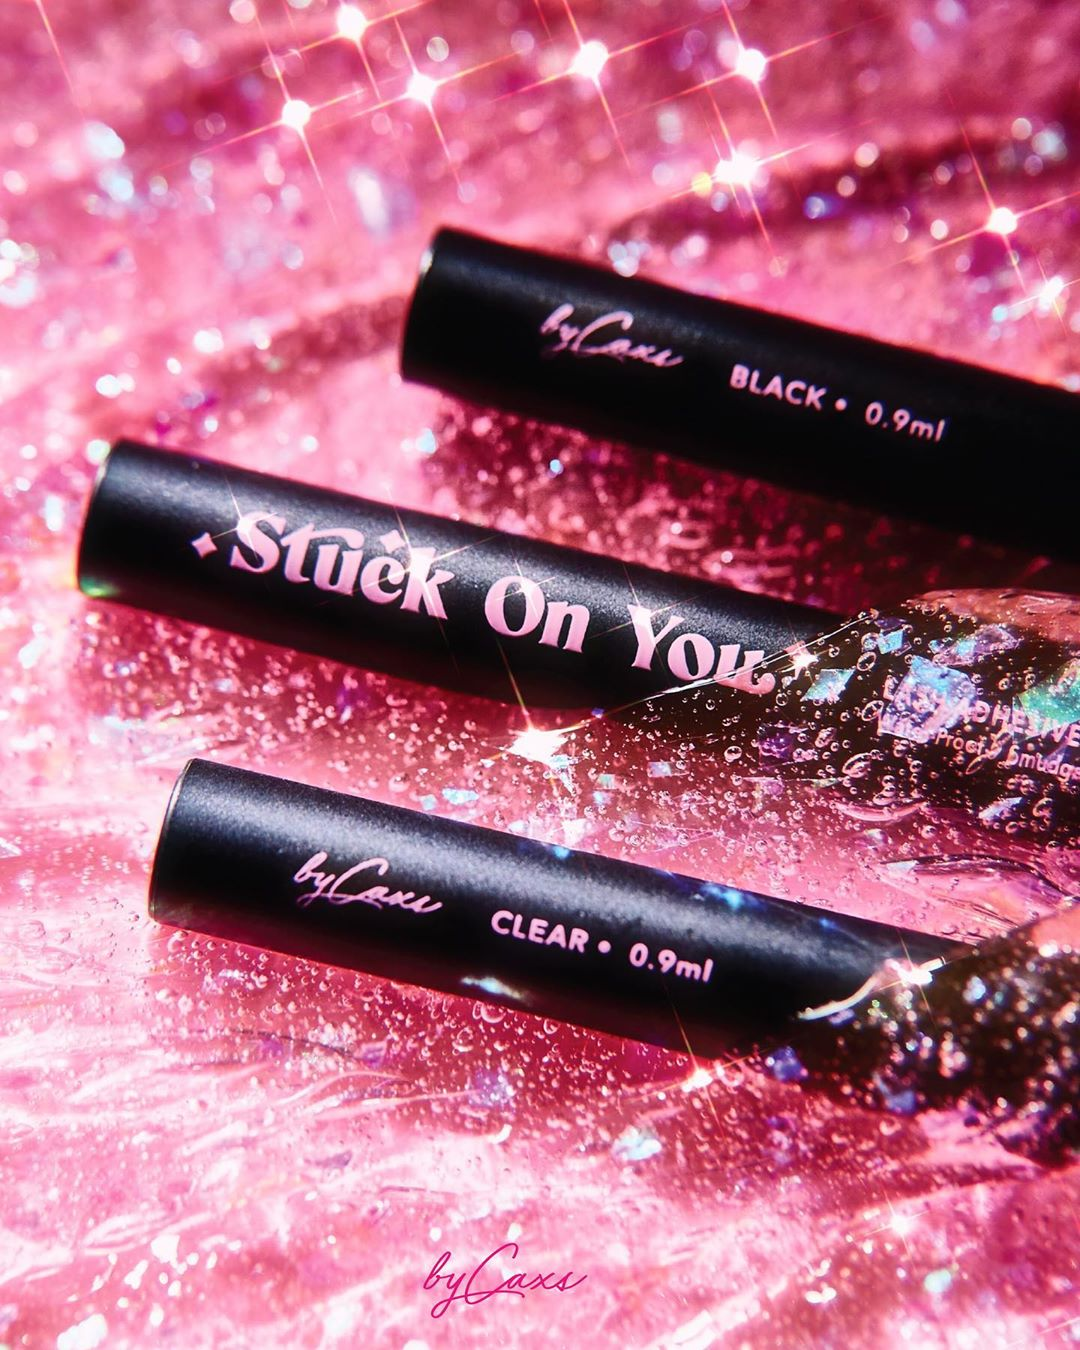 ByCaxs Stuck On You – Lash Adhesive Eyeliner